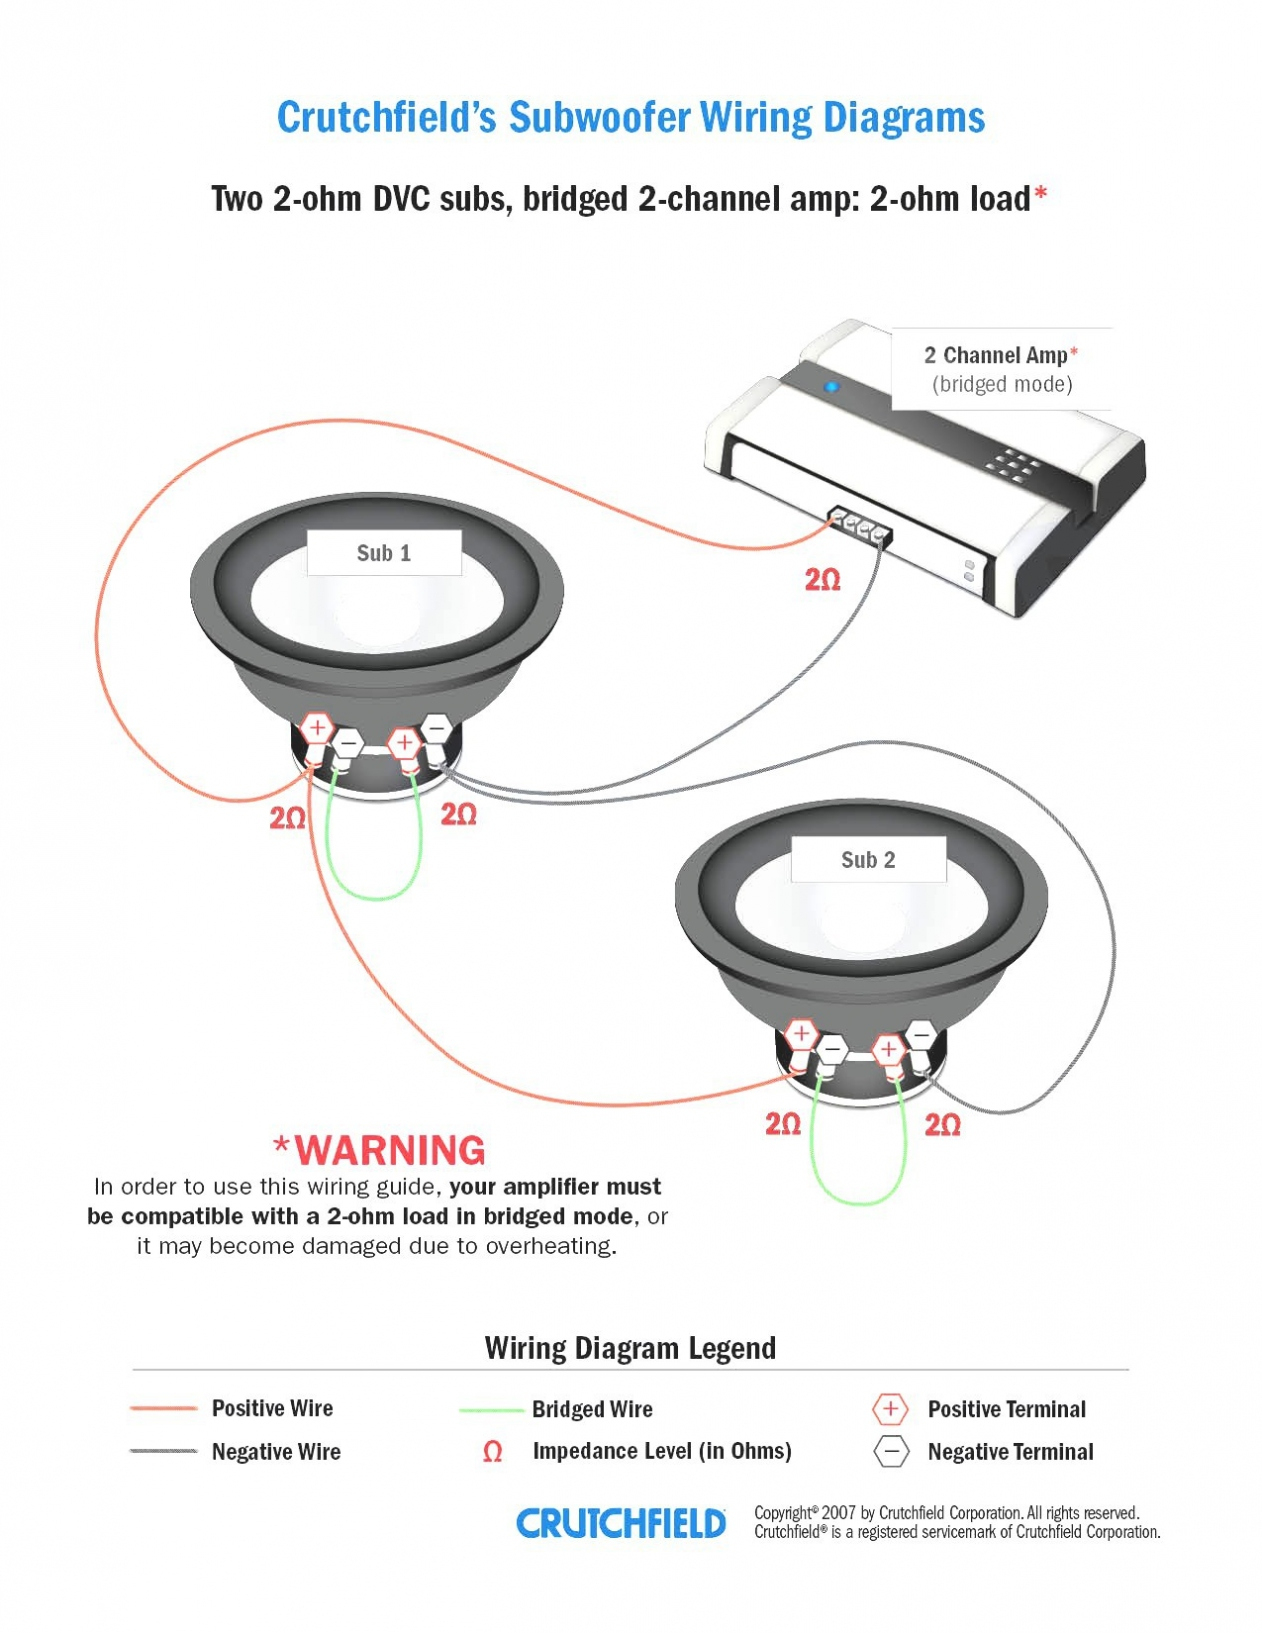 Wiring Diagram For Car Subwoofer Best Crutchfield Wiring Diagram - Subwoofer Wiring Diagram Dual 2 Ohm